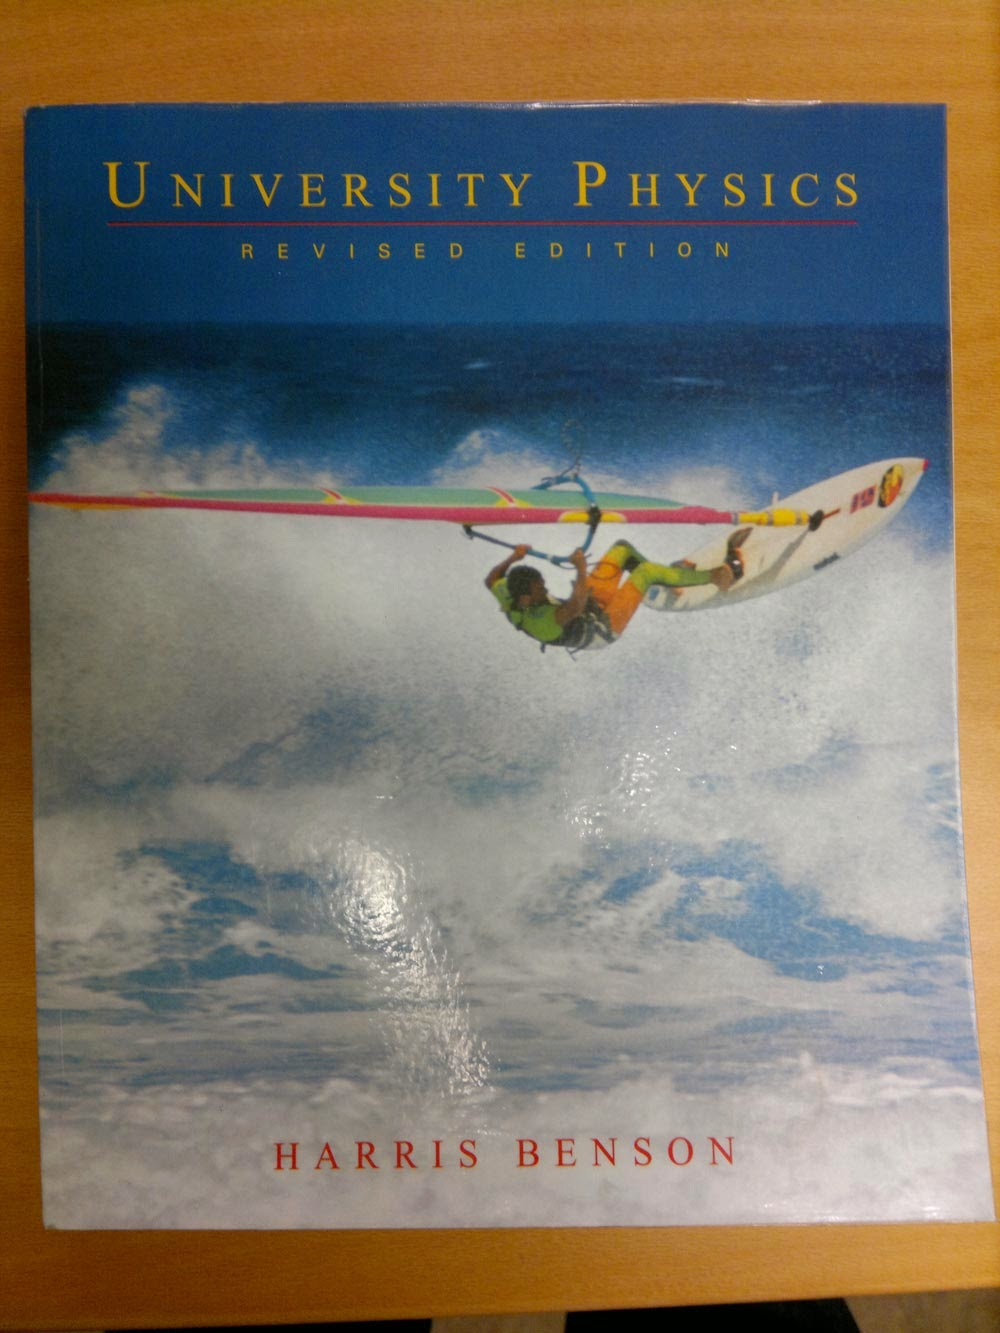 University Physics av Harris Benson (Revised Edition)